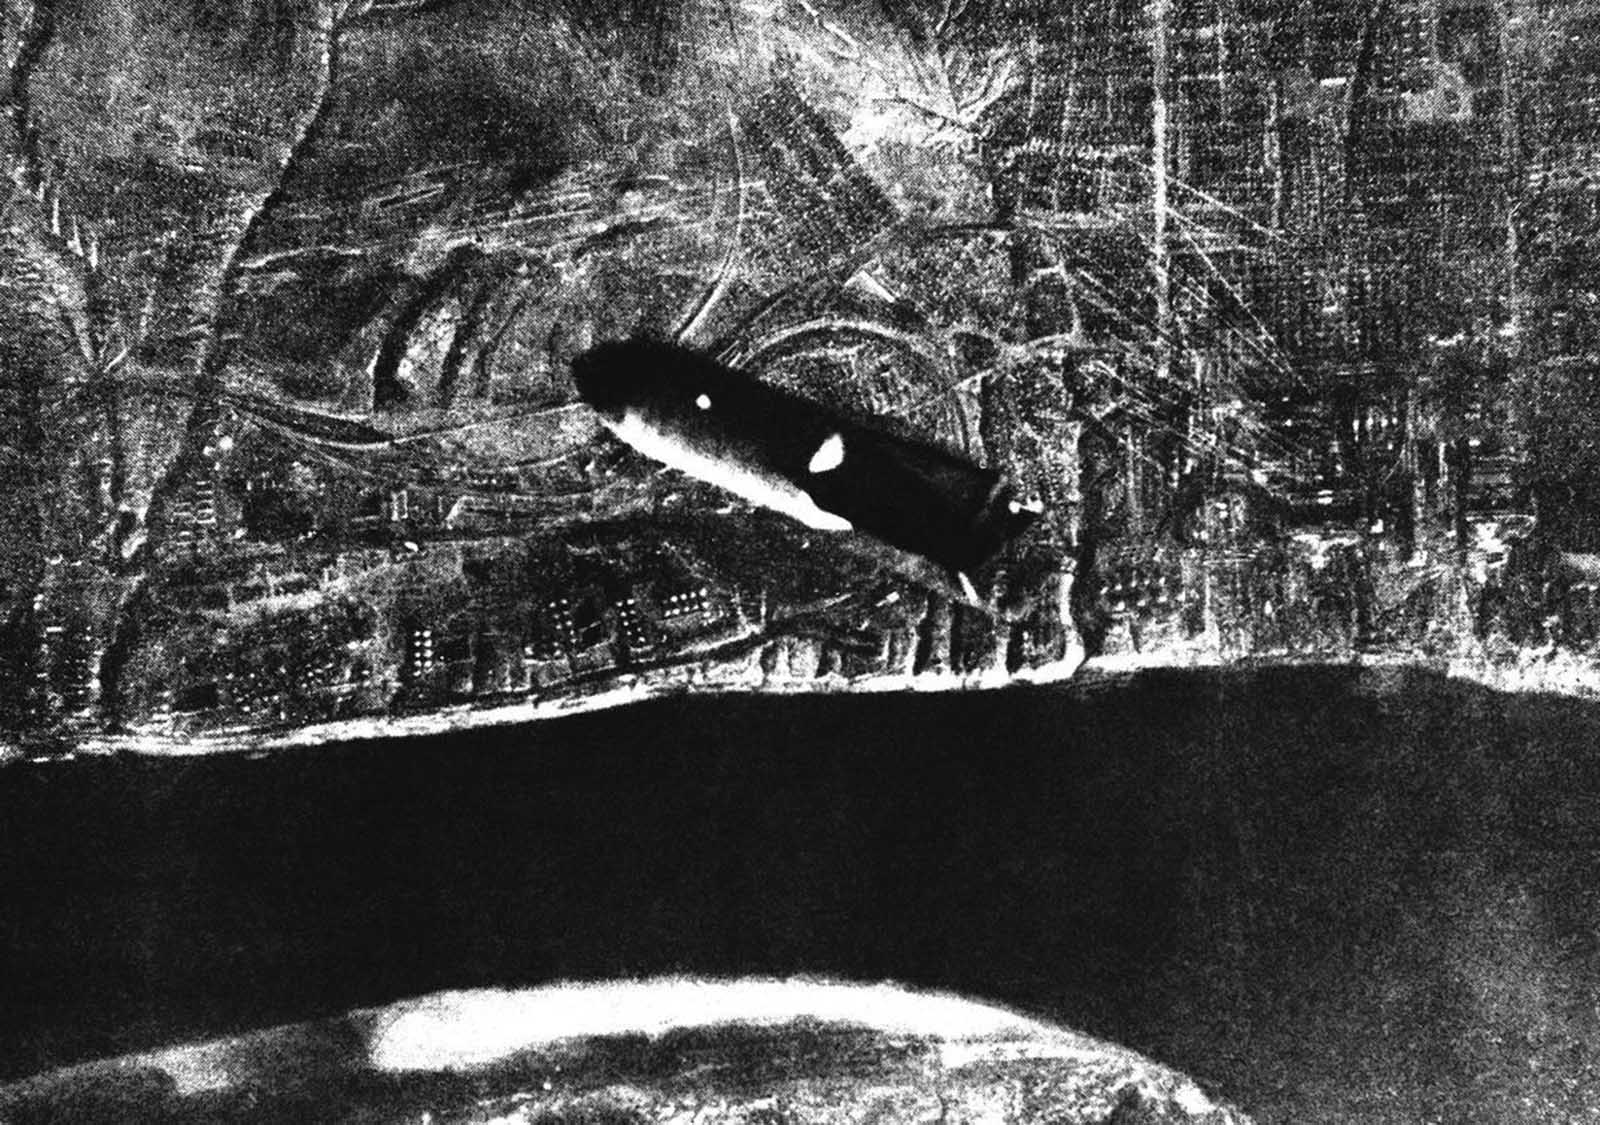 This picture, received by the Associated Press on September 25, 1942 through a neutral source, shows a bomb falling after it has just left the plane on its descent to Stalingrad below.